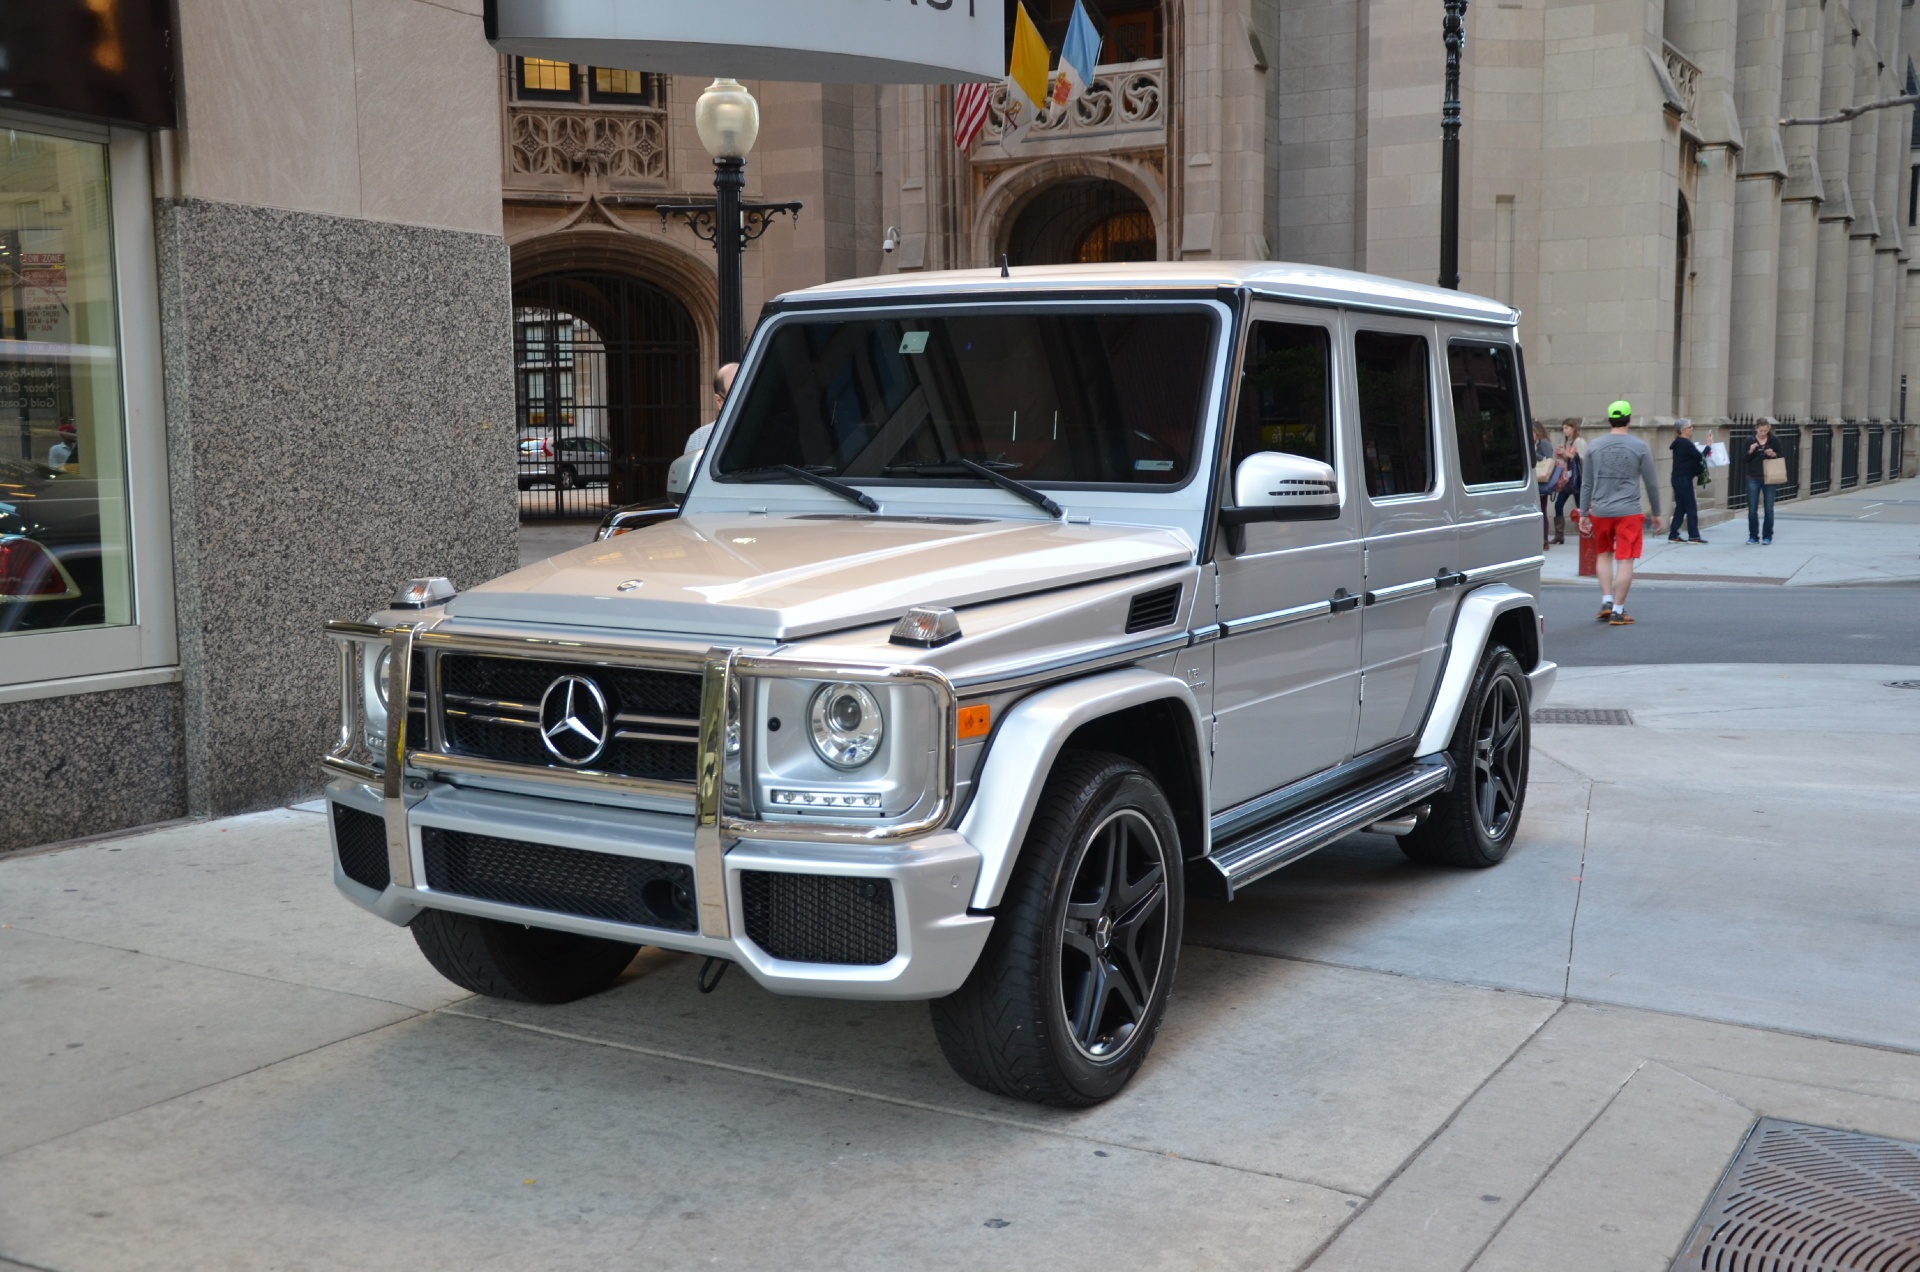 2013 mercedes benz g class g63 amg used bentley used rolls royce used lamborghini used. Black Bedroom Furniture Sets. Home Design Ideas